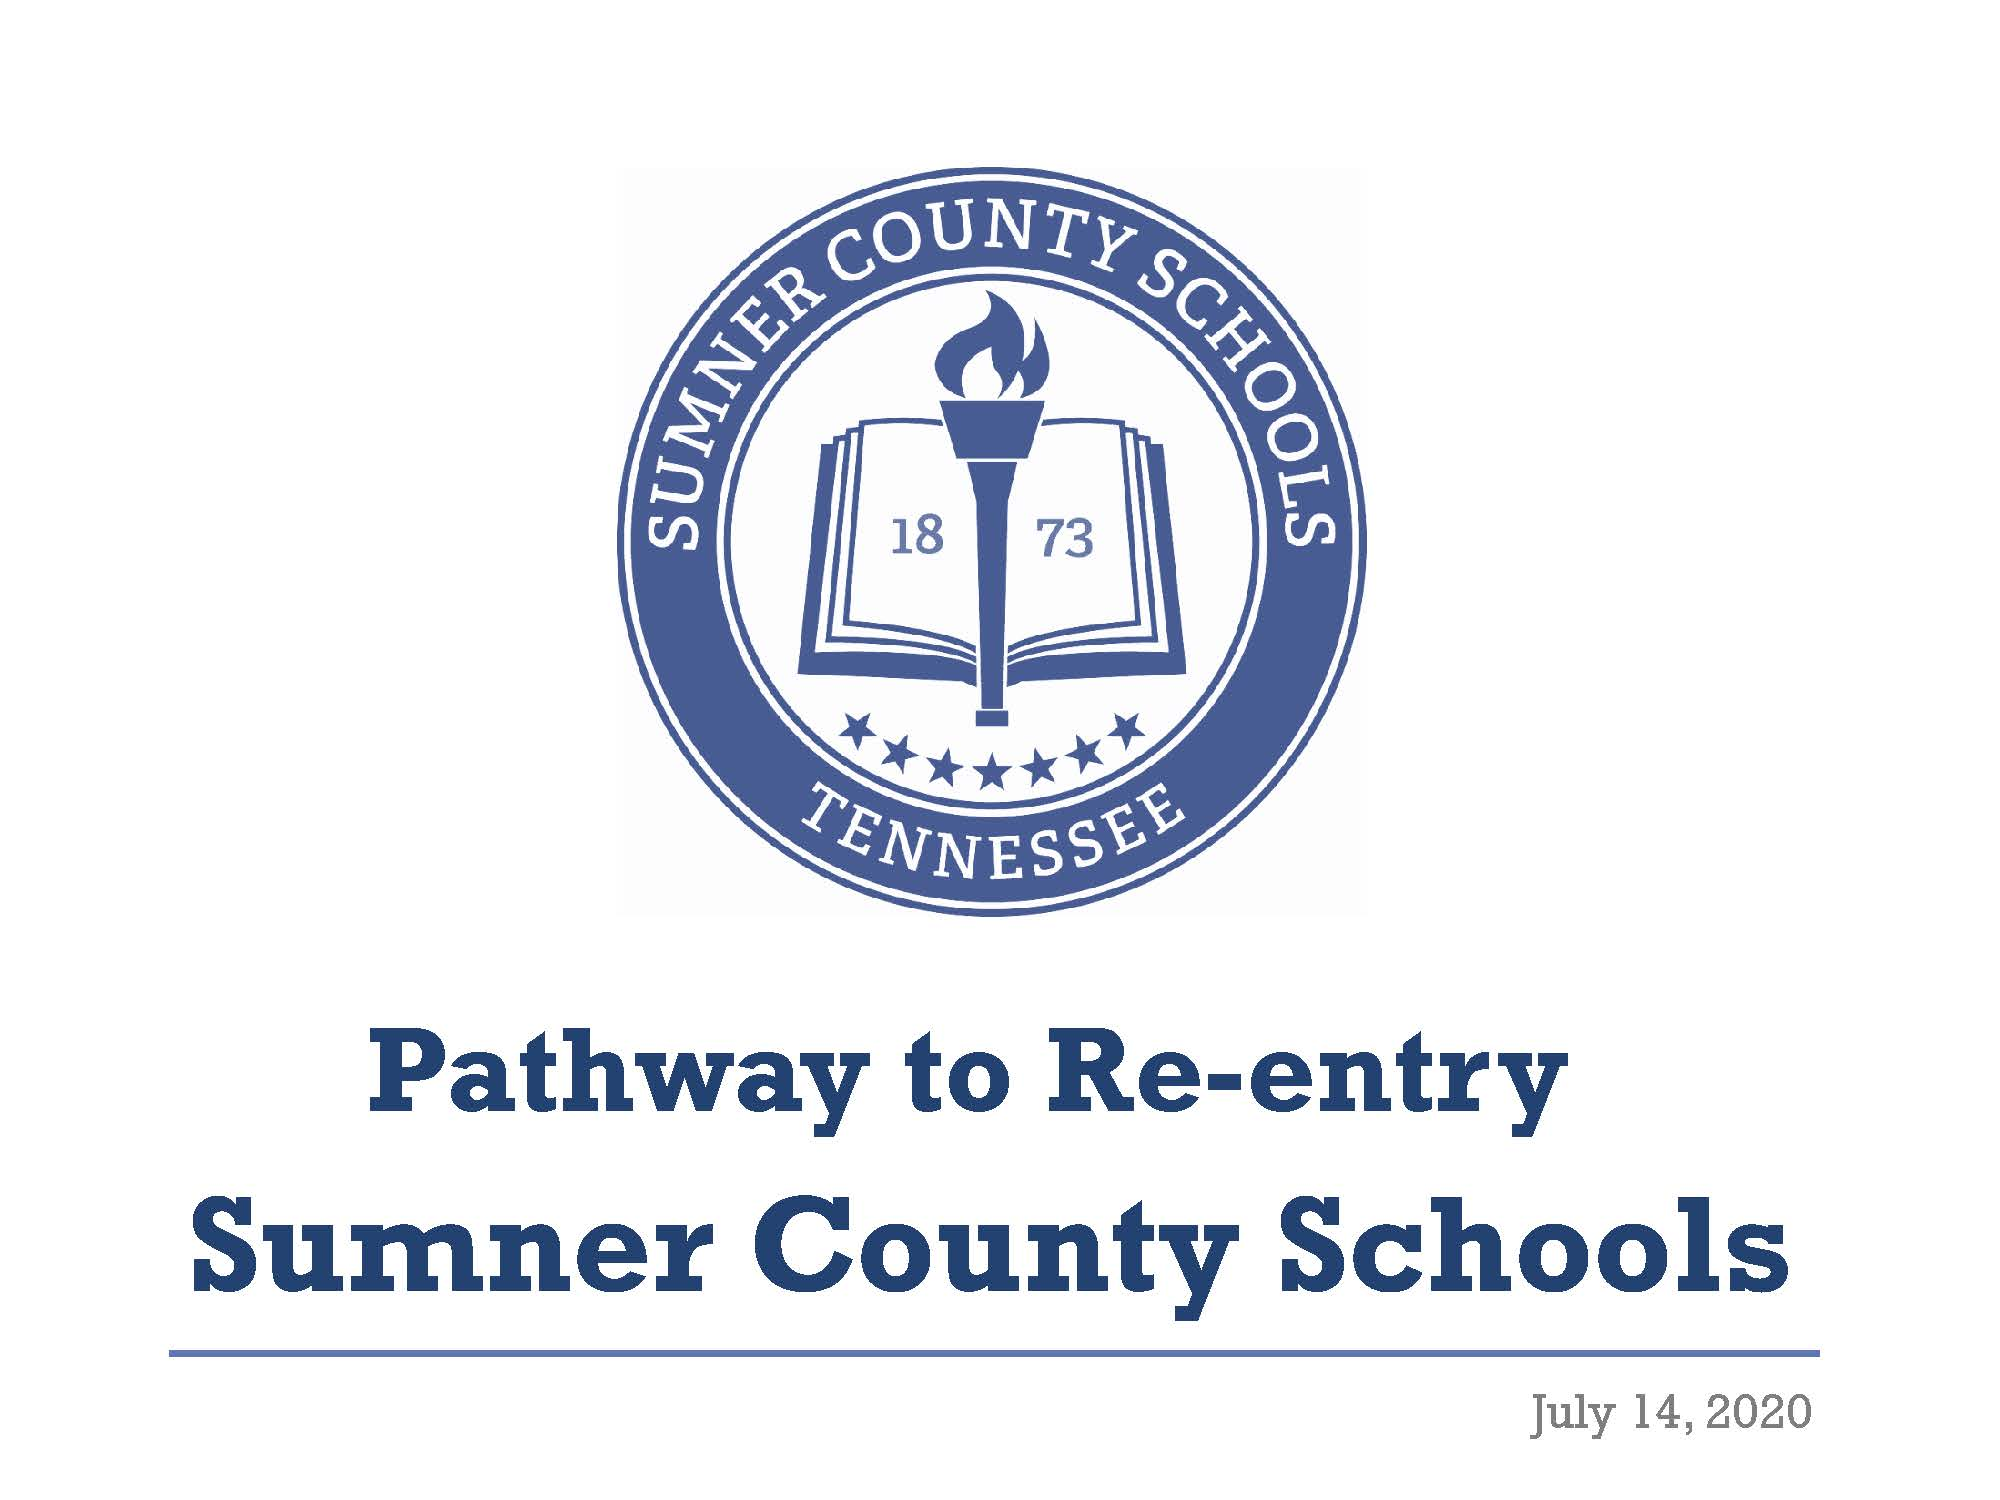 SCS Pathway to Re-Entry